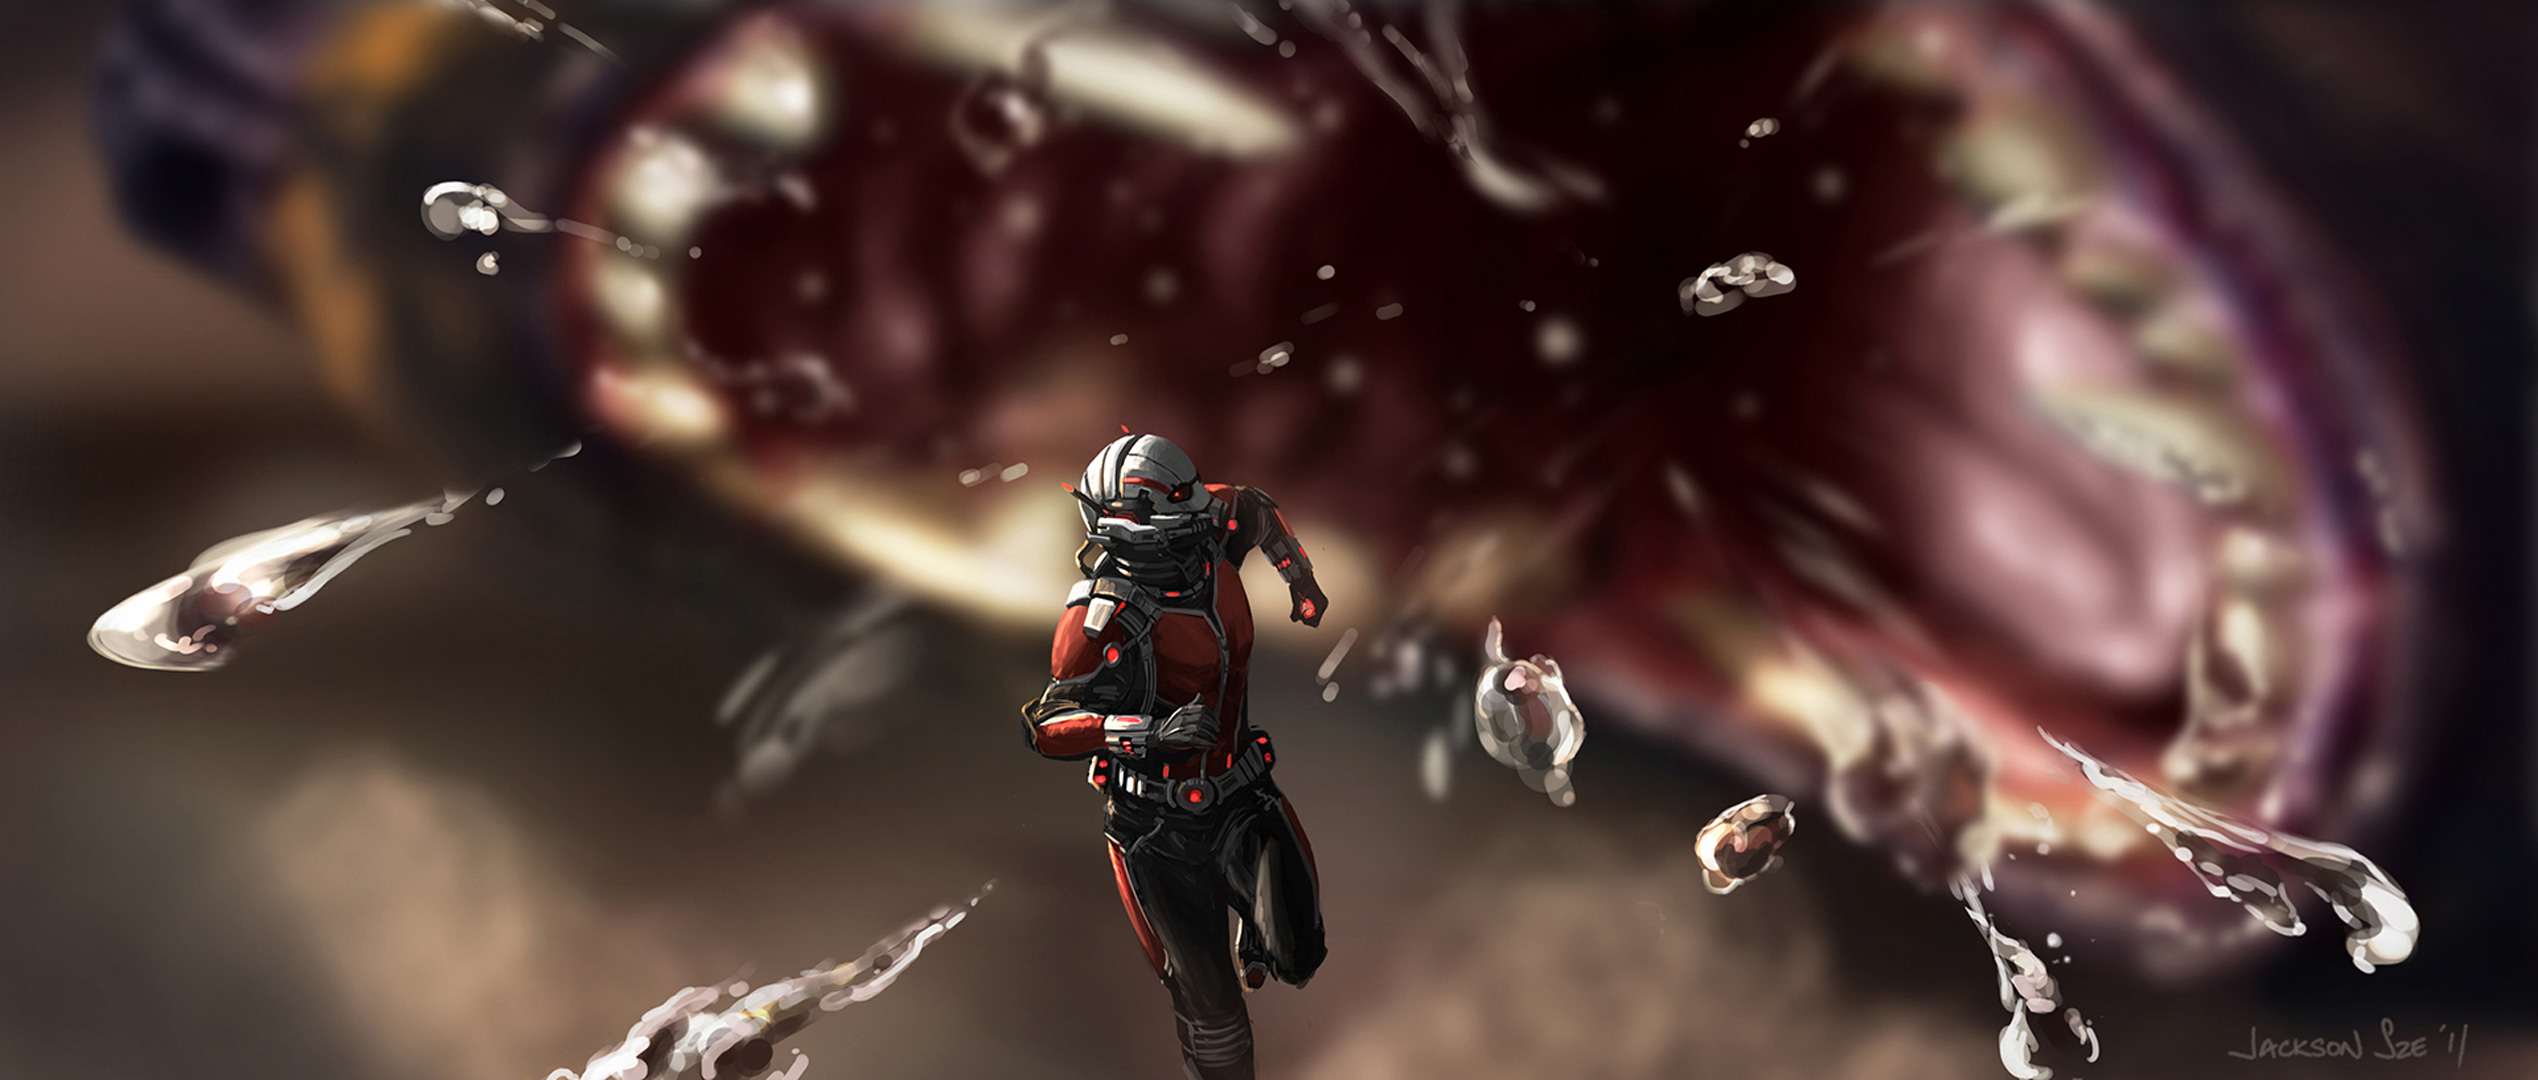 Ant Man And The Wasp Wallpaper: Ant Man And The Wasp Art, HD Superheroes, 4k Wallpapers